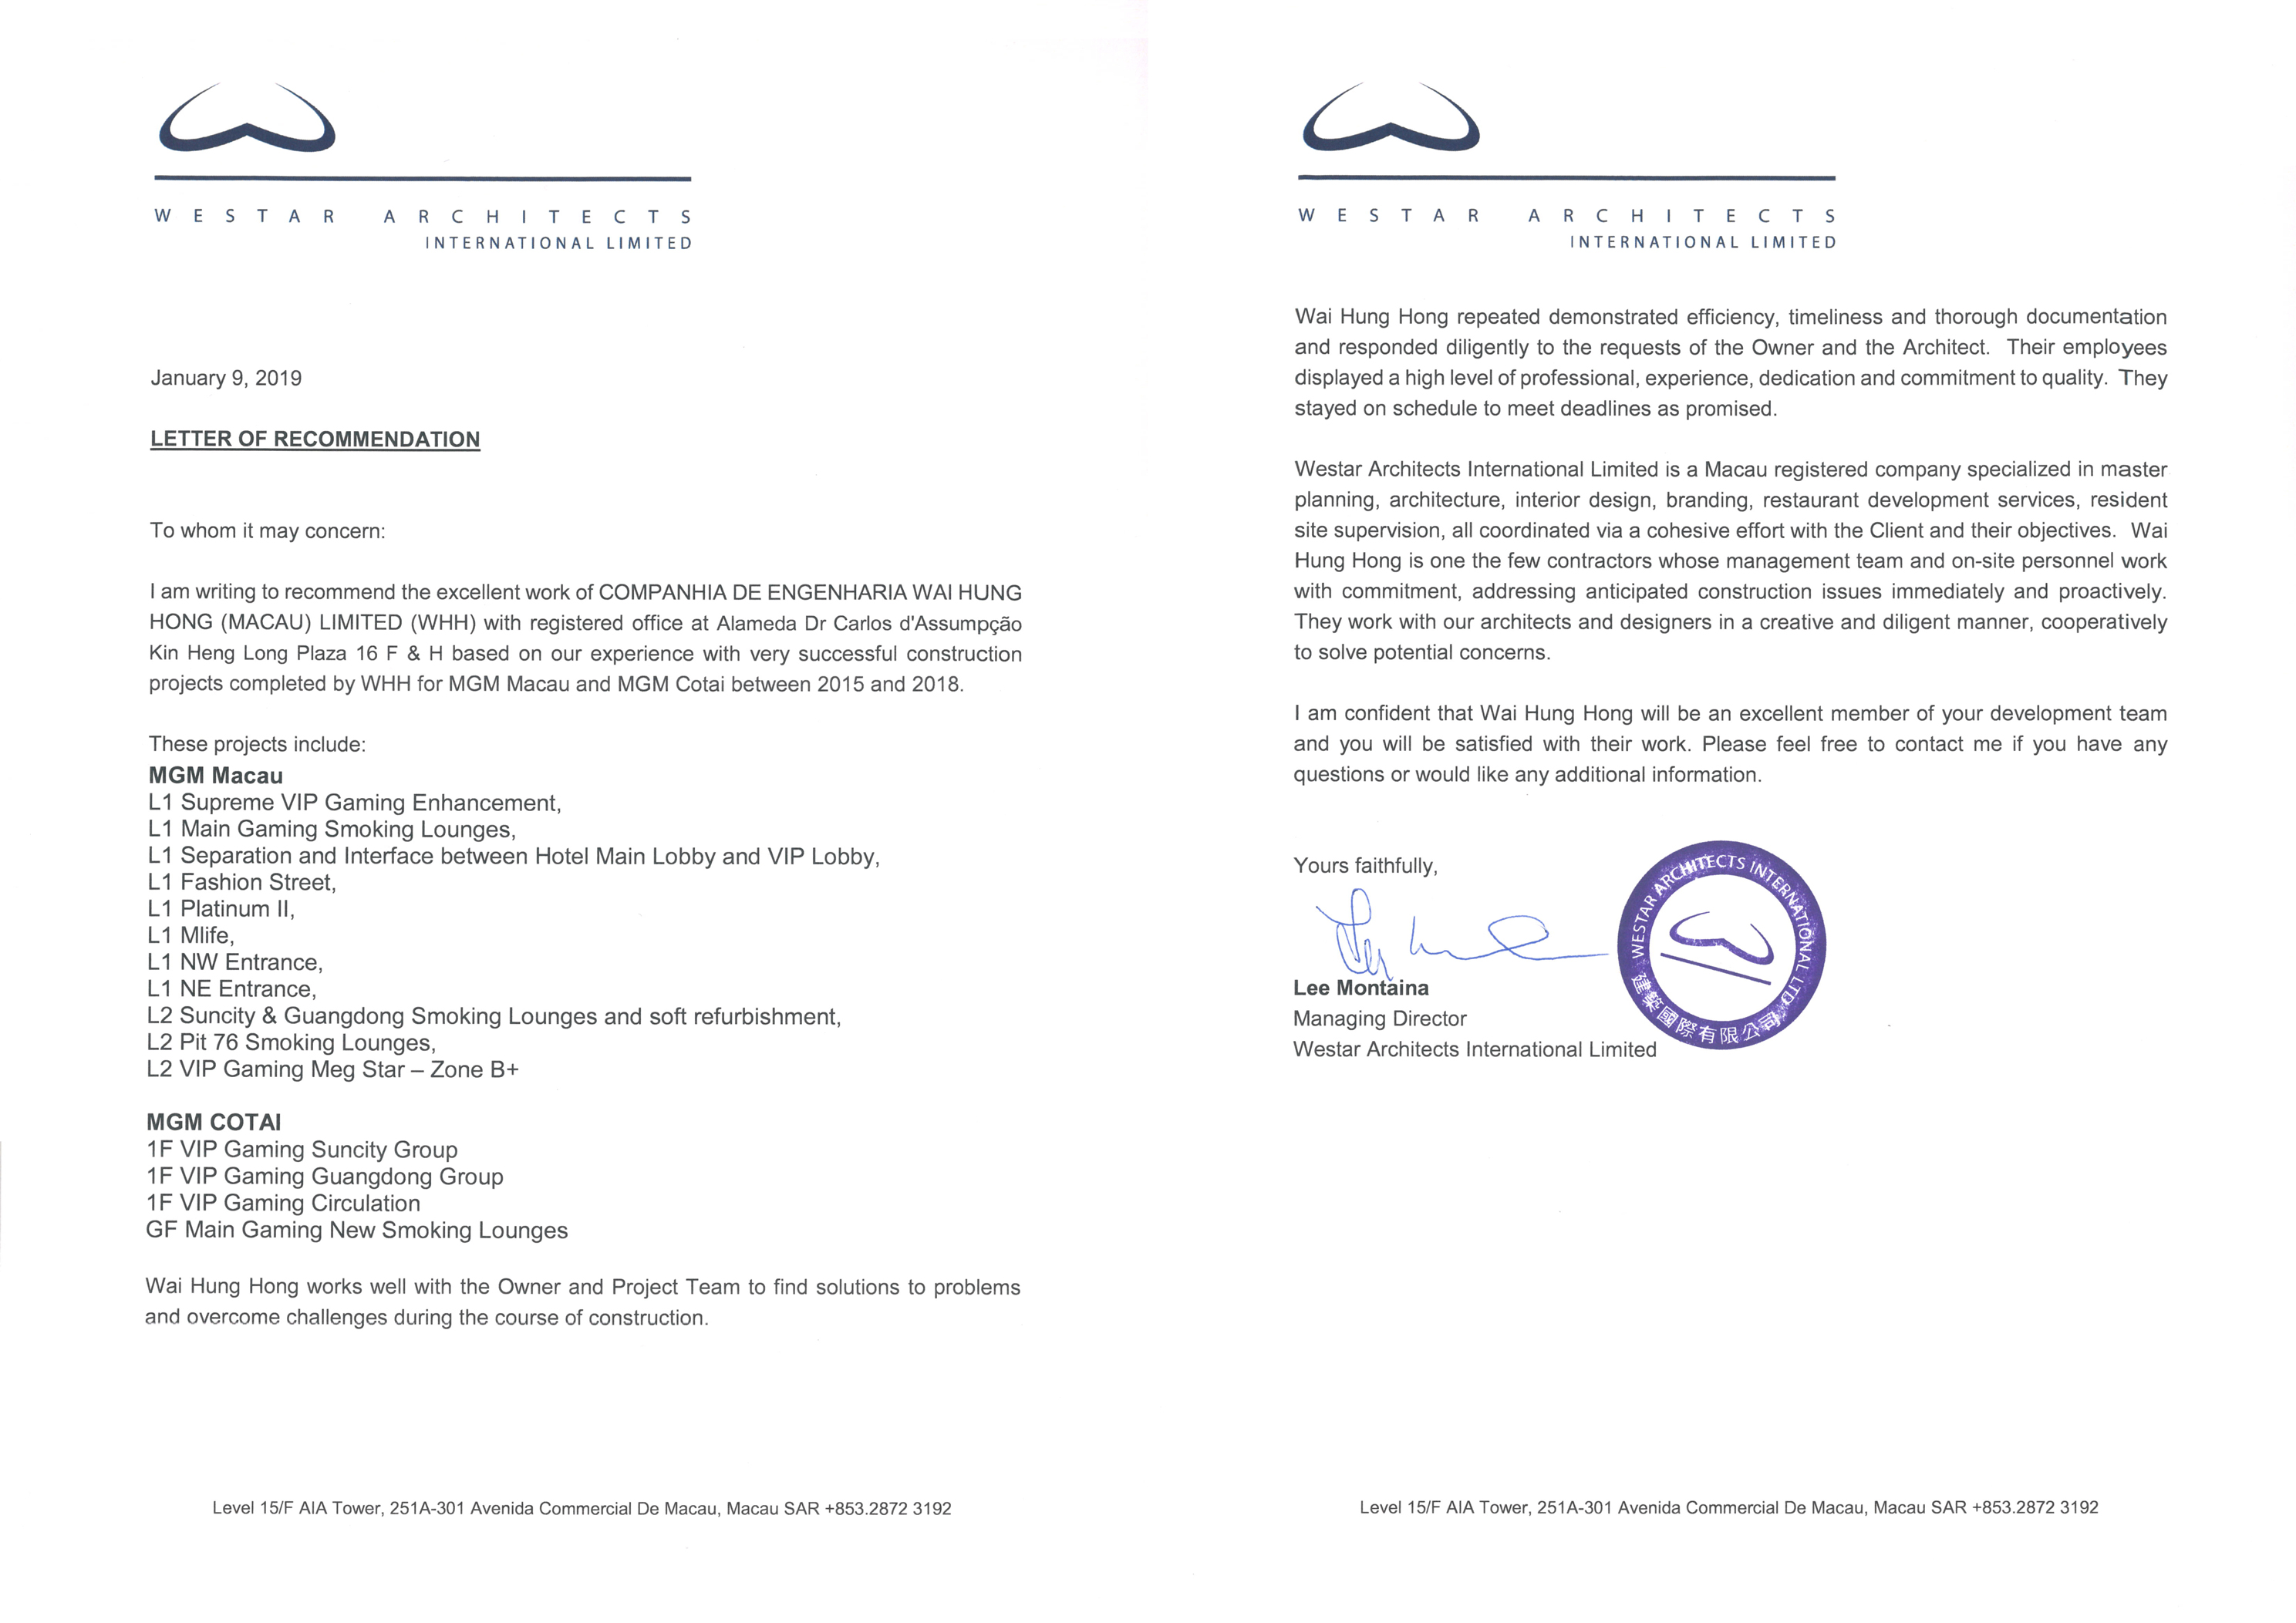 WESTAR ARCHITECTS INTERNATIONAL LIMITED - LETTER OF RECOMMENDATION